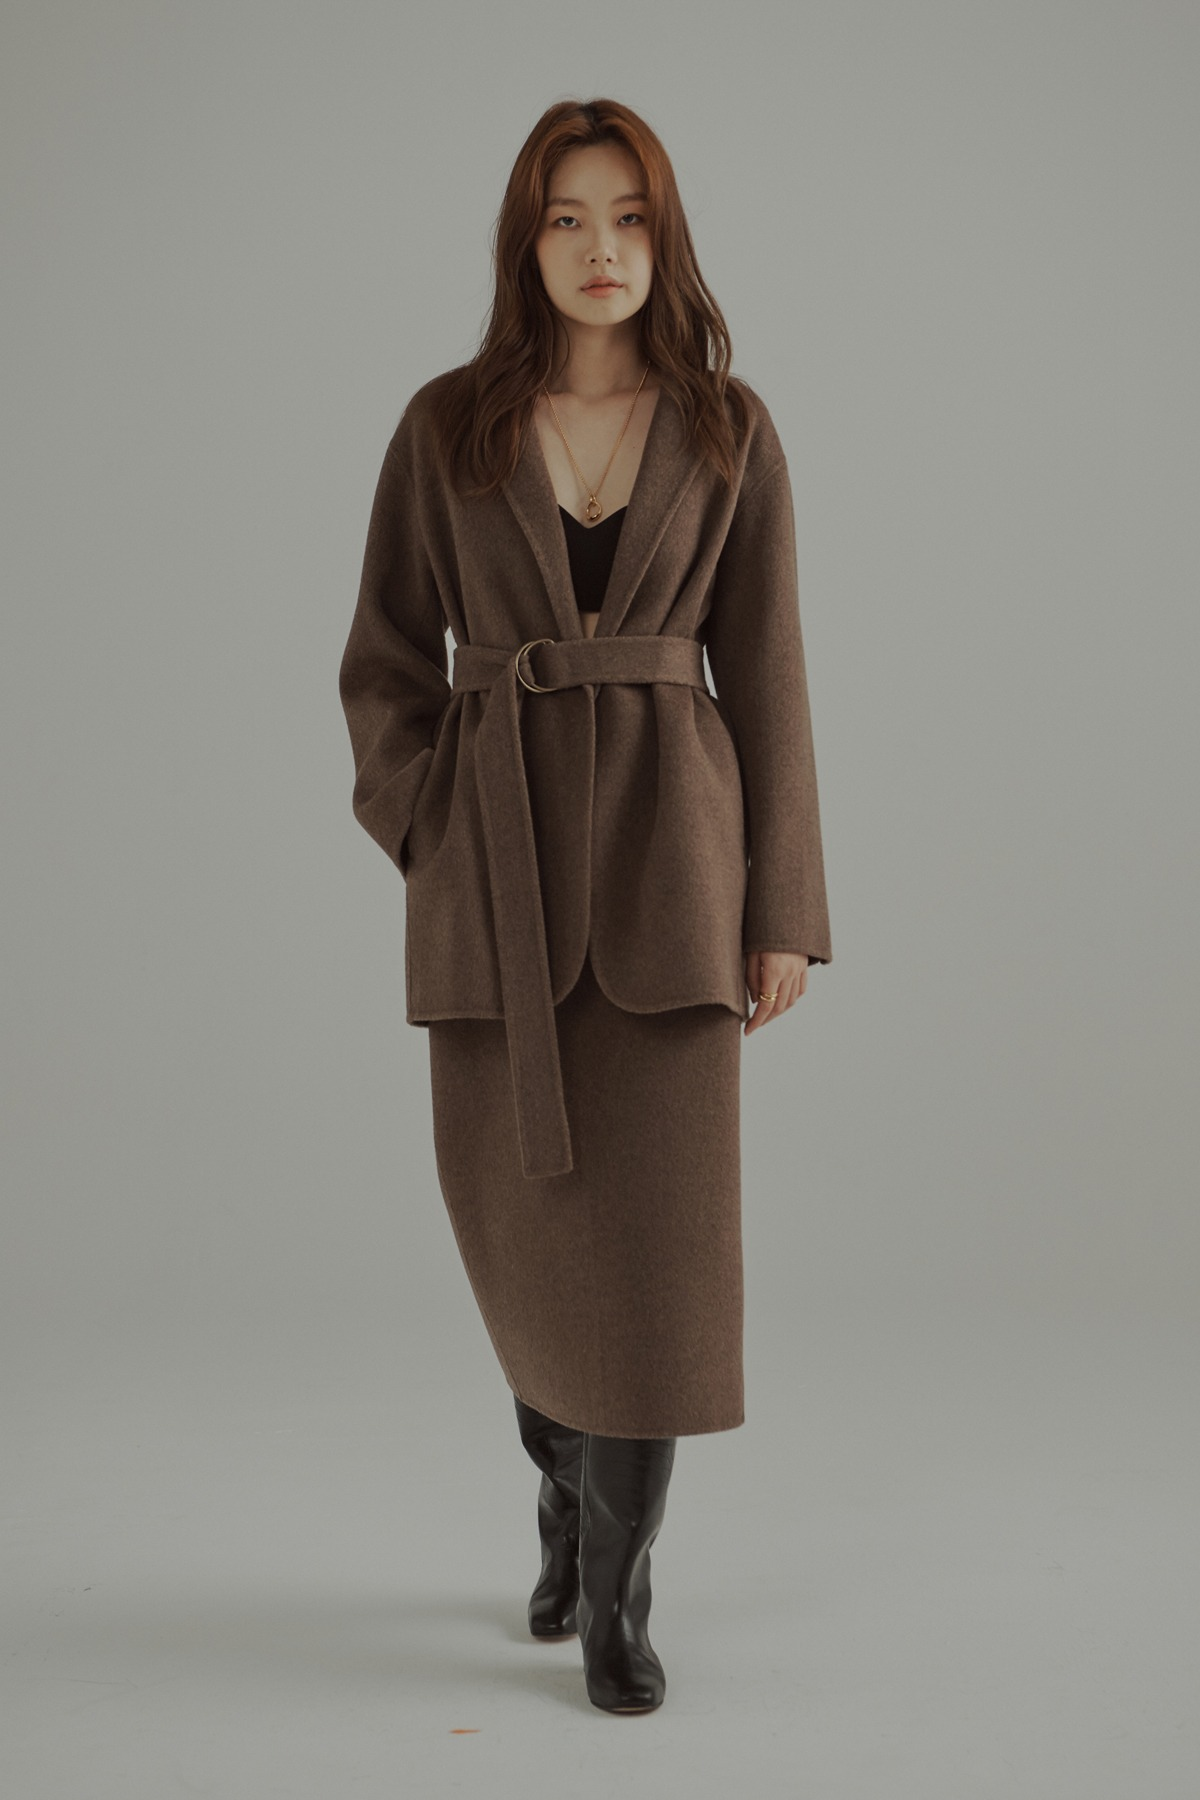 Cashmere Wool Double Face Jacket Melange Brown with Belt